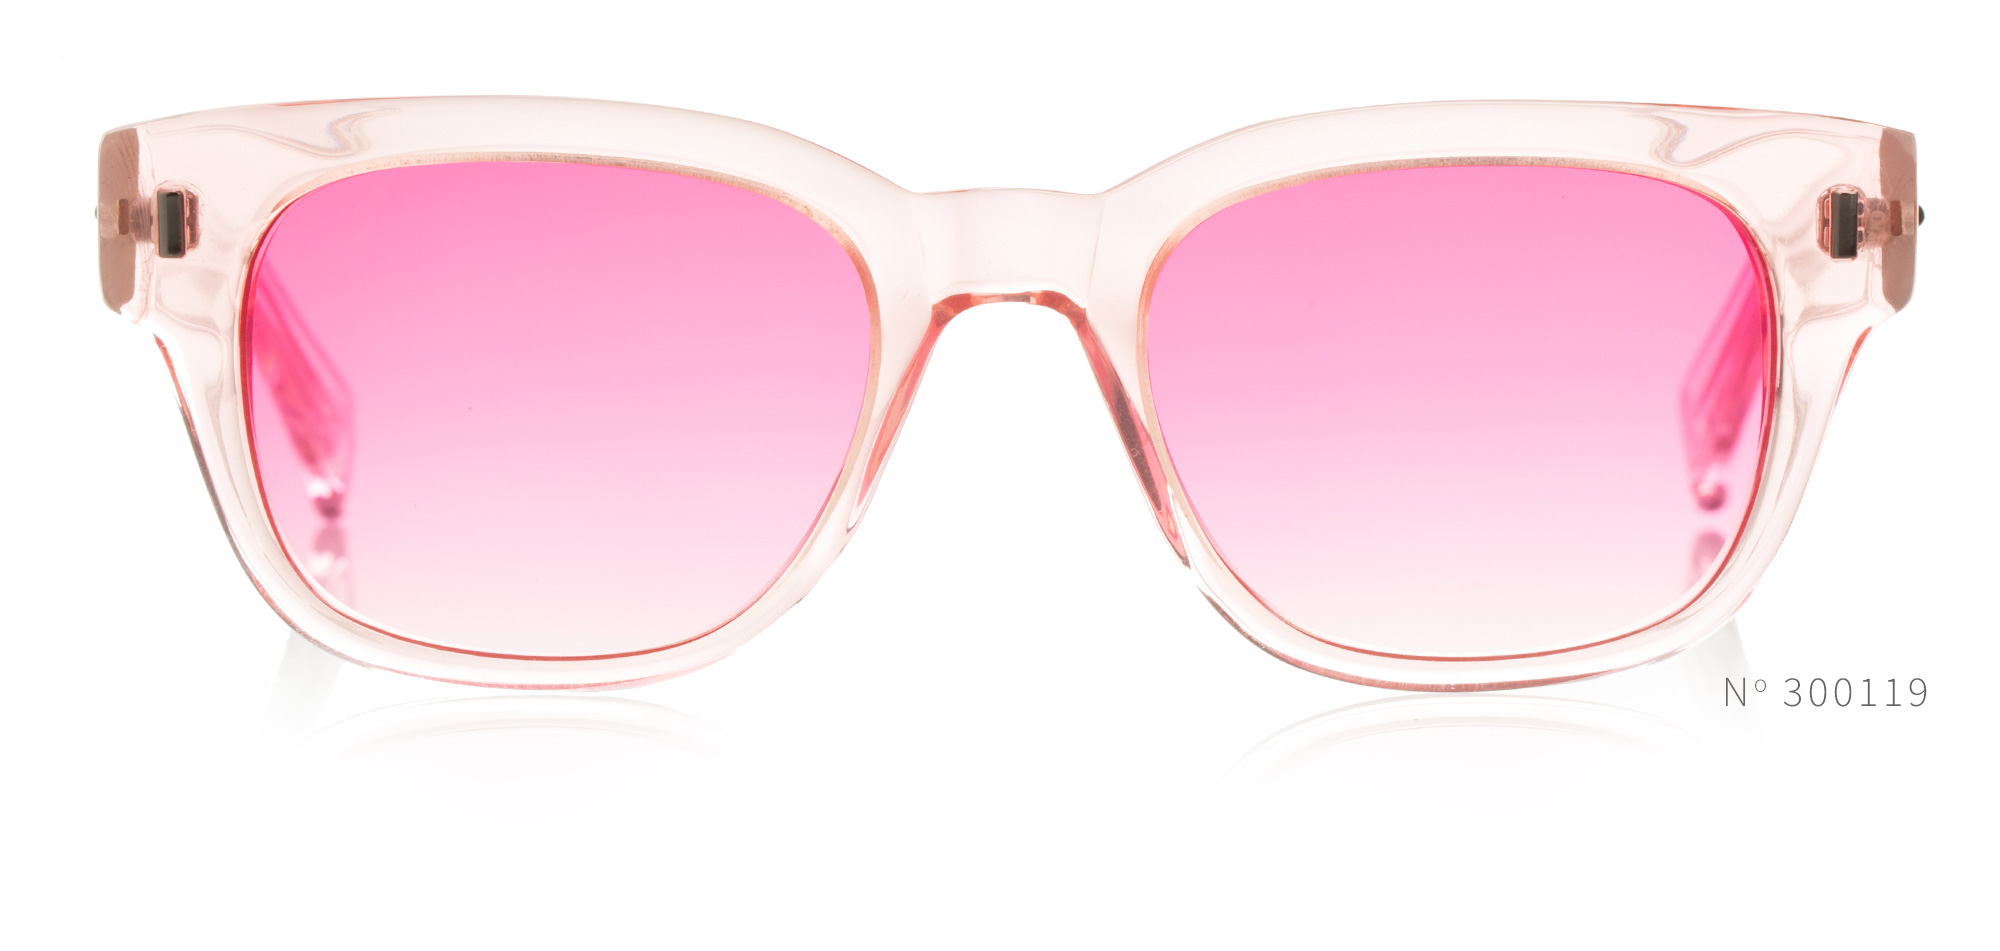 967b65d2cc OR  The definition of statement sunnies — a translucent square frame with  an optional rose-tinted lens. They re fun